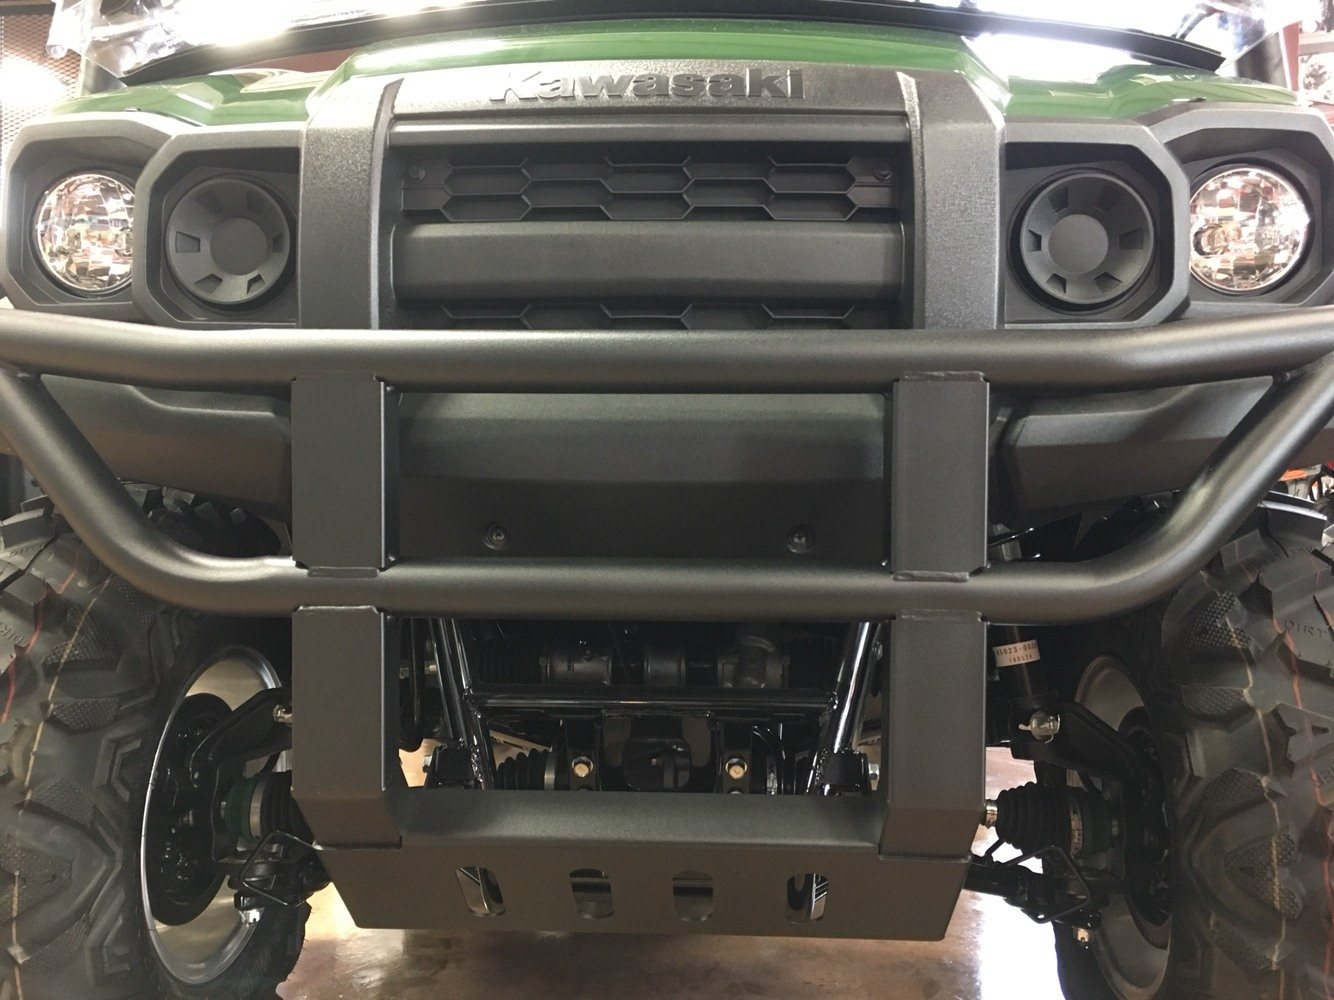 2019 Kawasaki Mule SX 4X4 in Evansville, Indiana - Photo 7